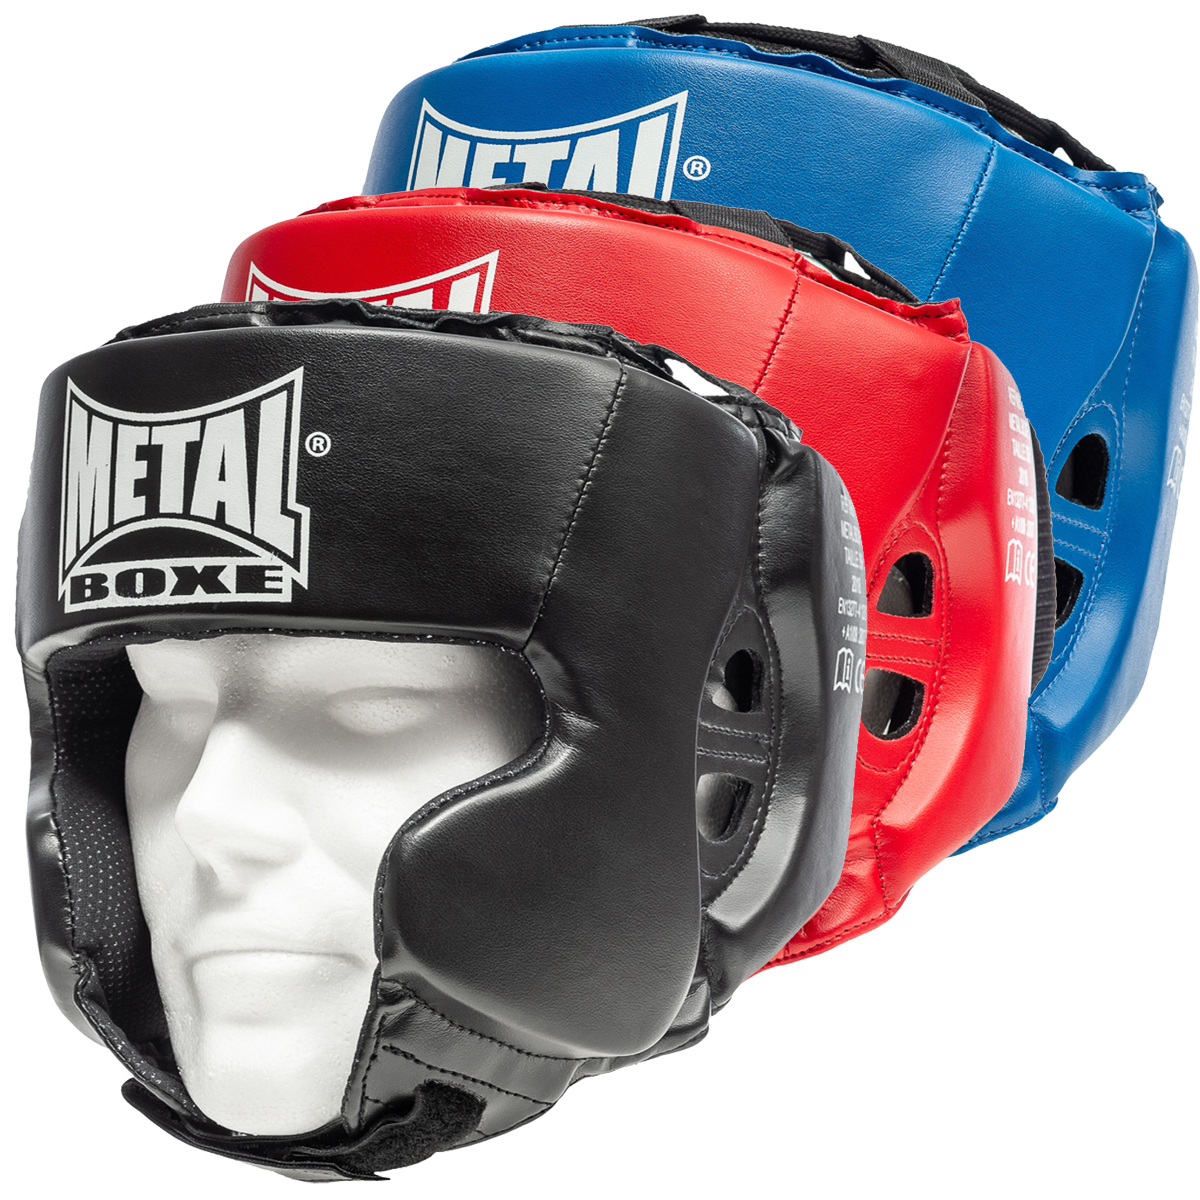 Casque de boxe adulte